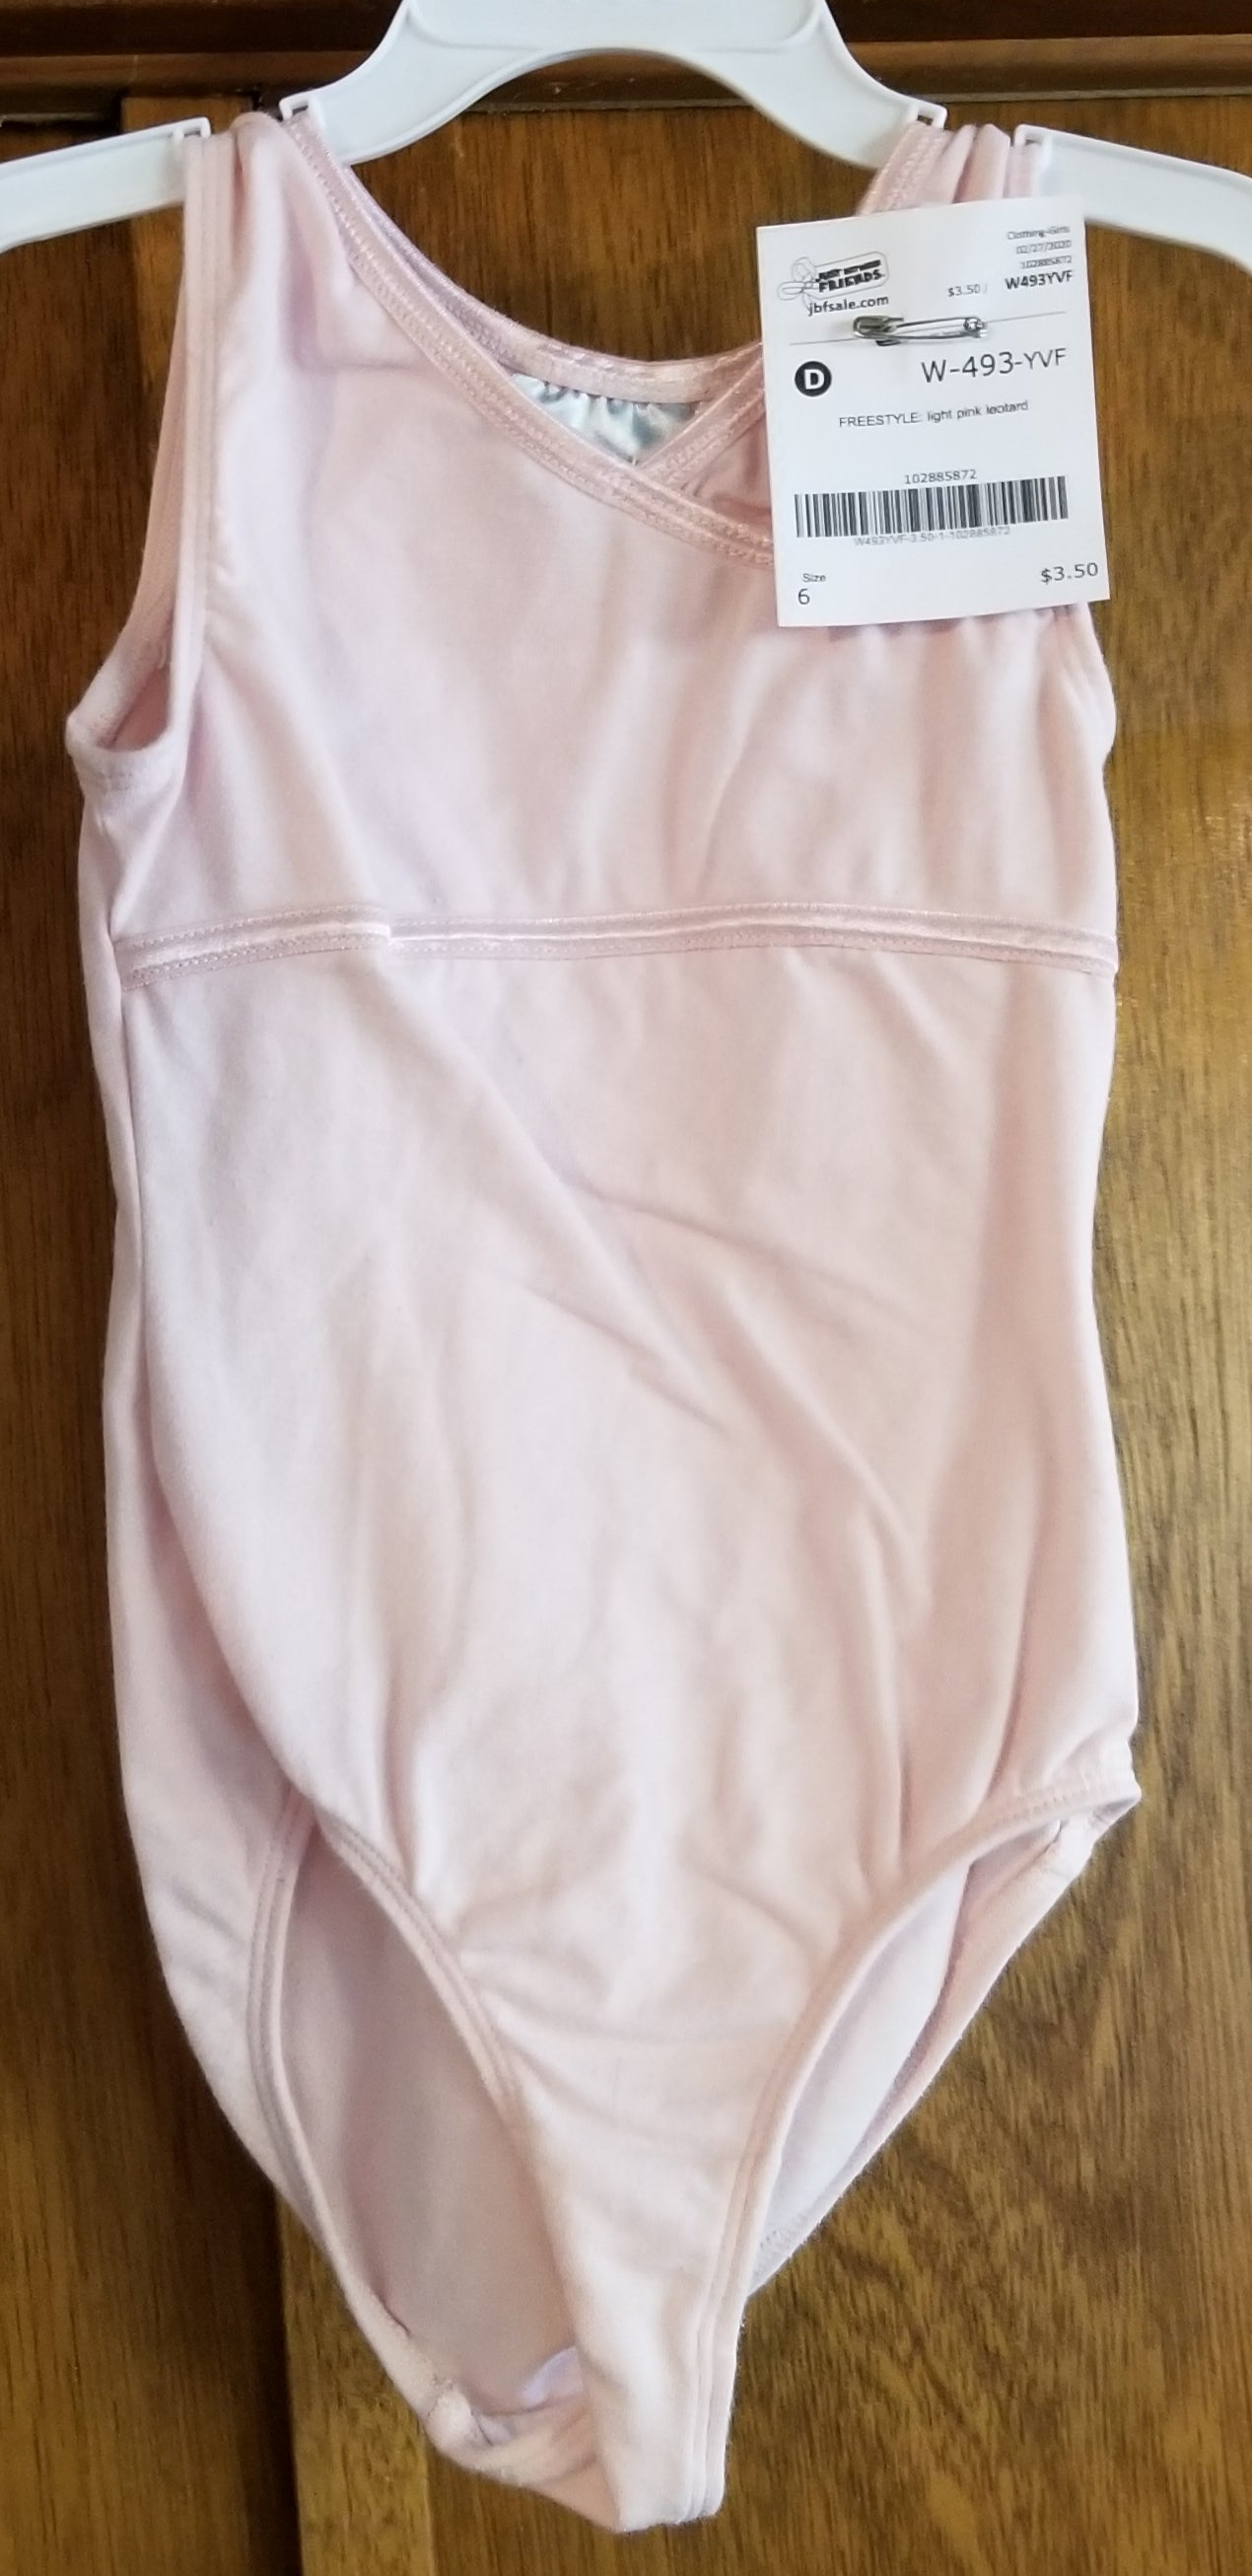 FREESTYLE light pink leotard girls 6